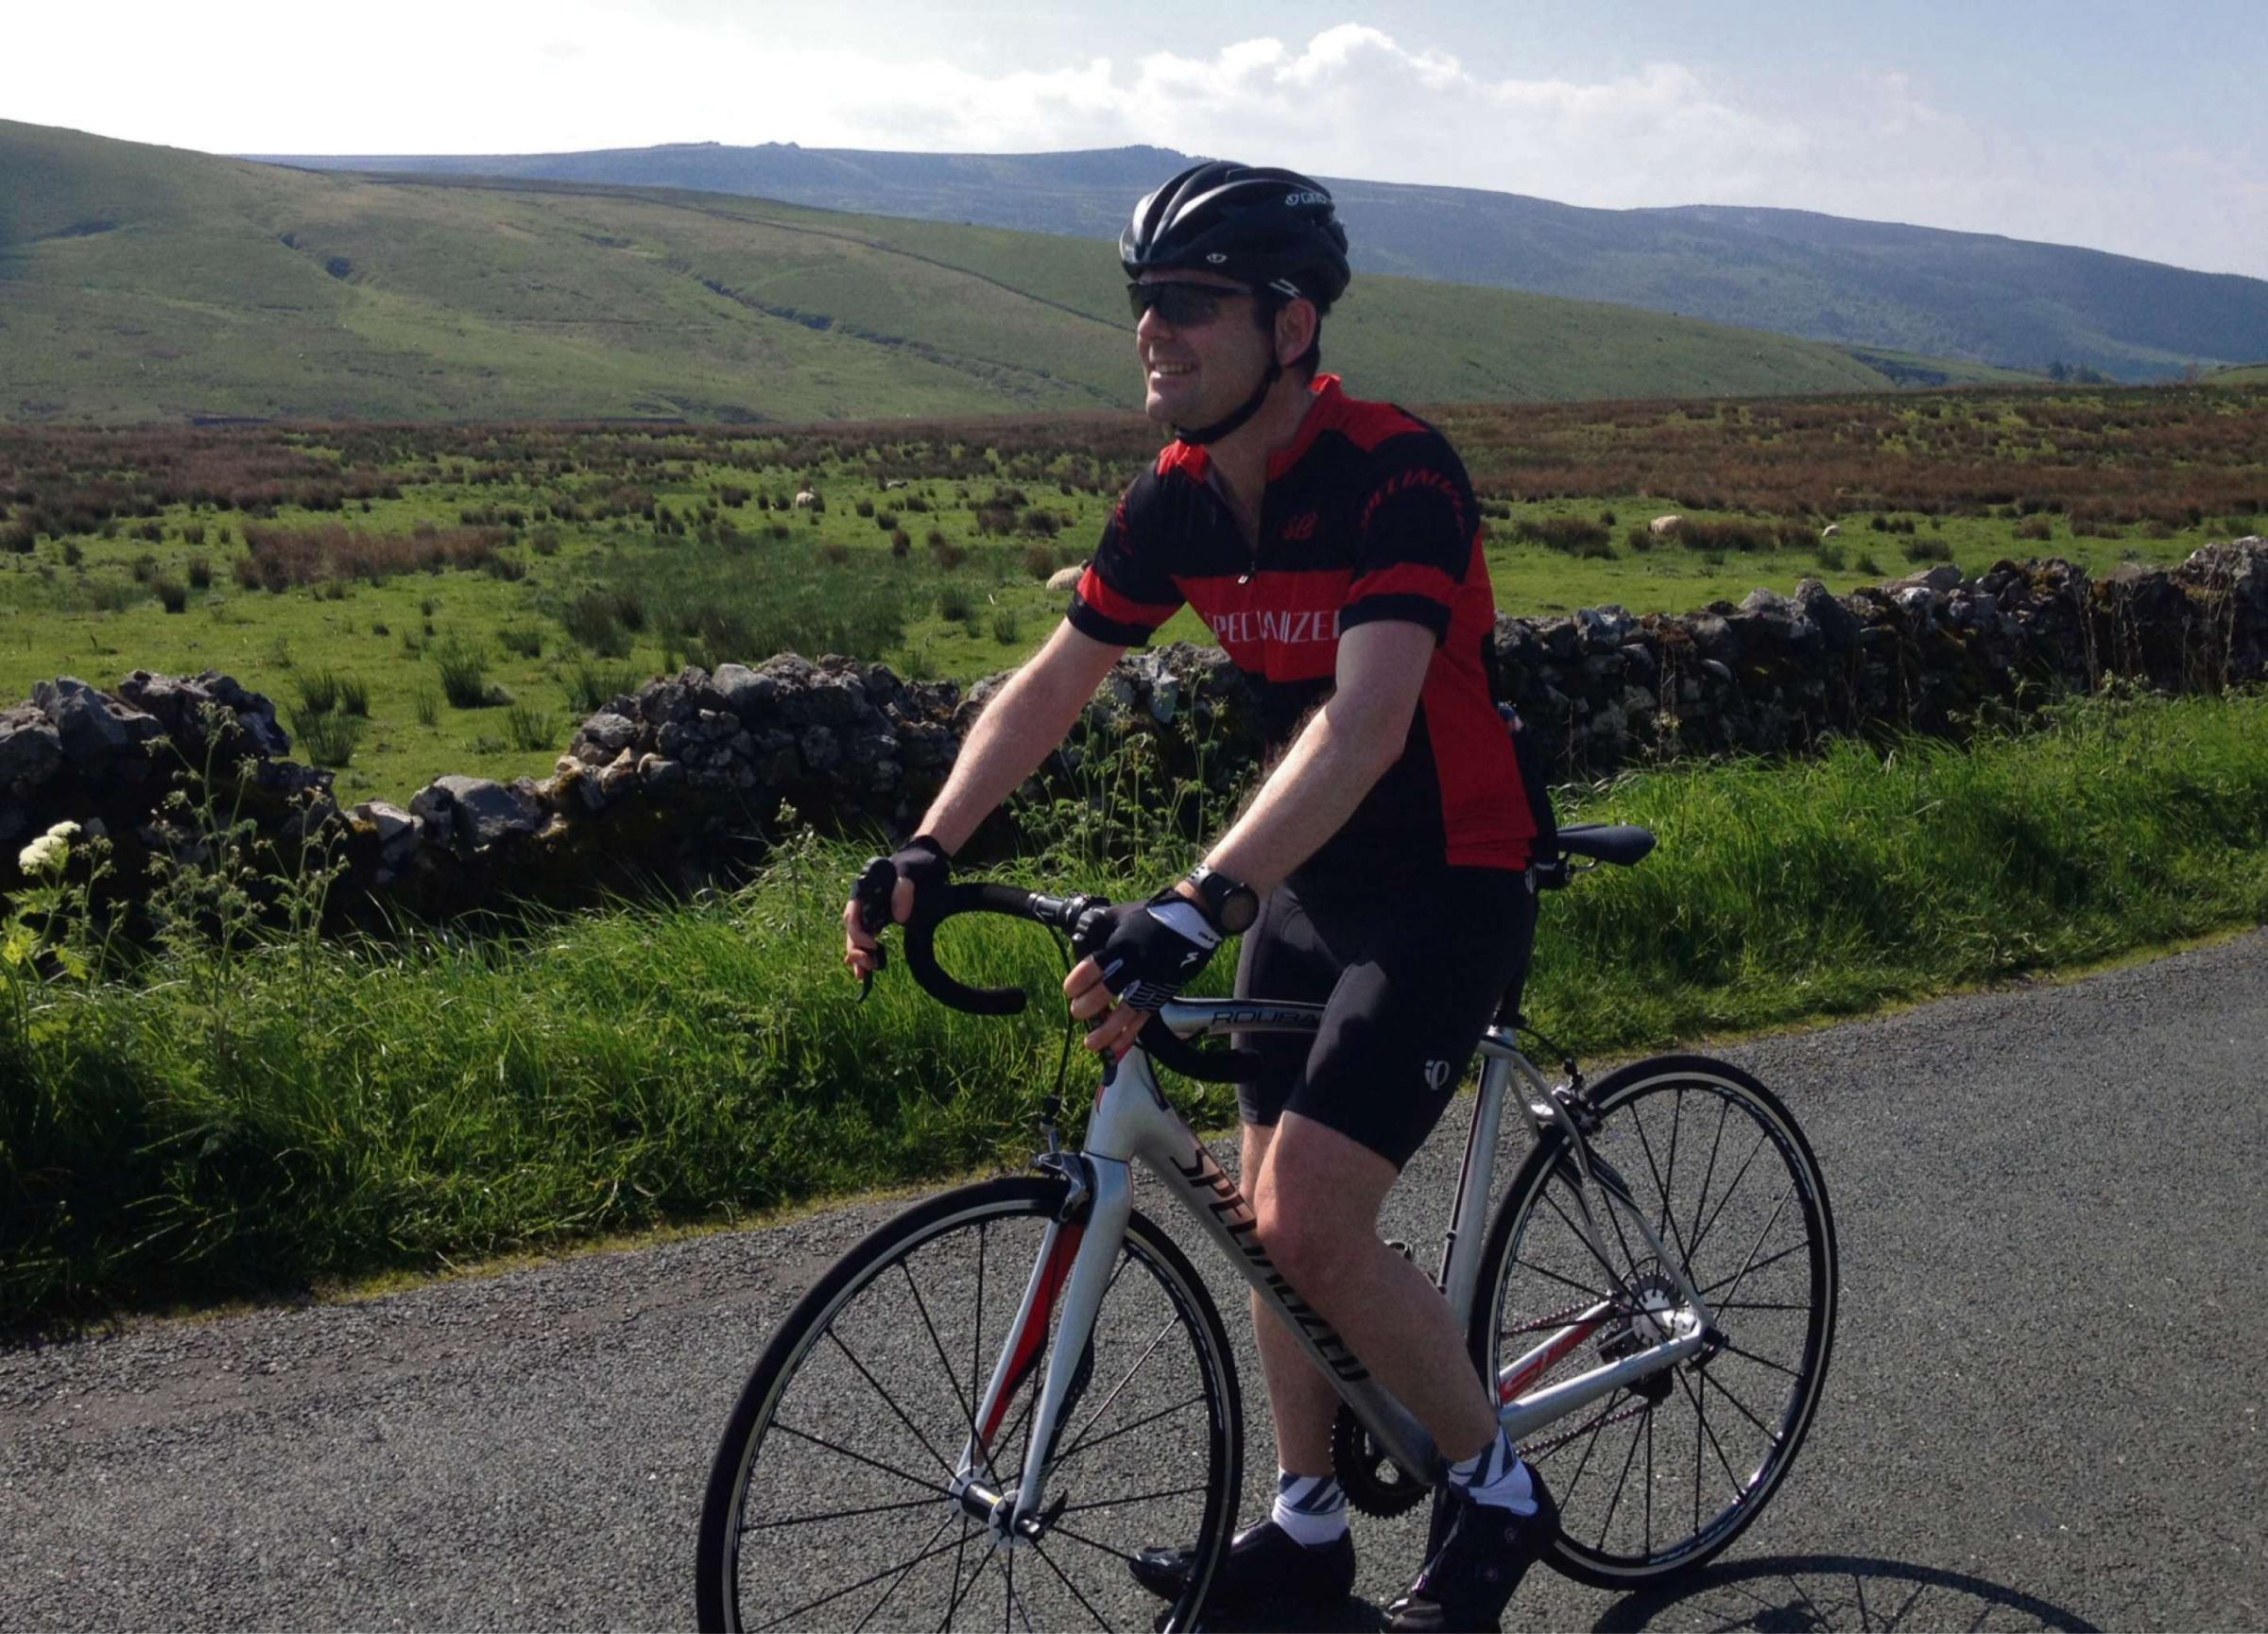 lkley resident takes on his own 'Tour de France' challenge for charity